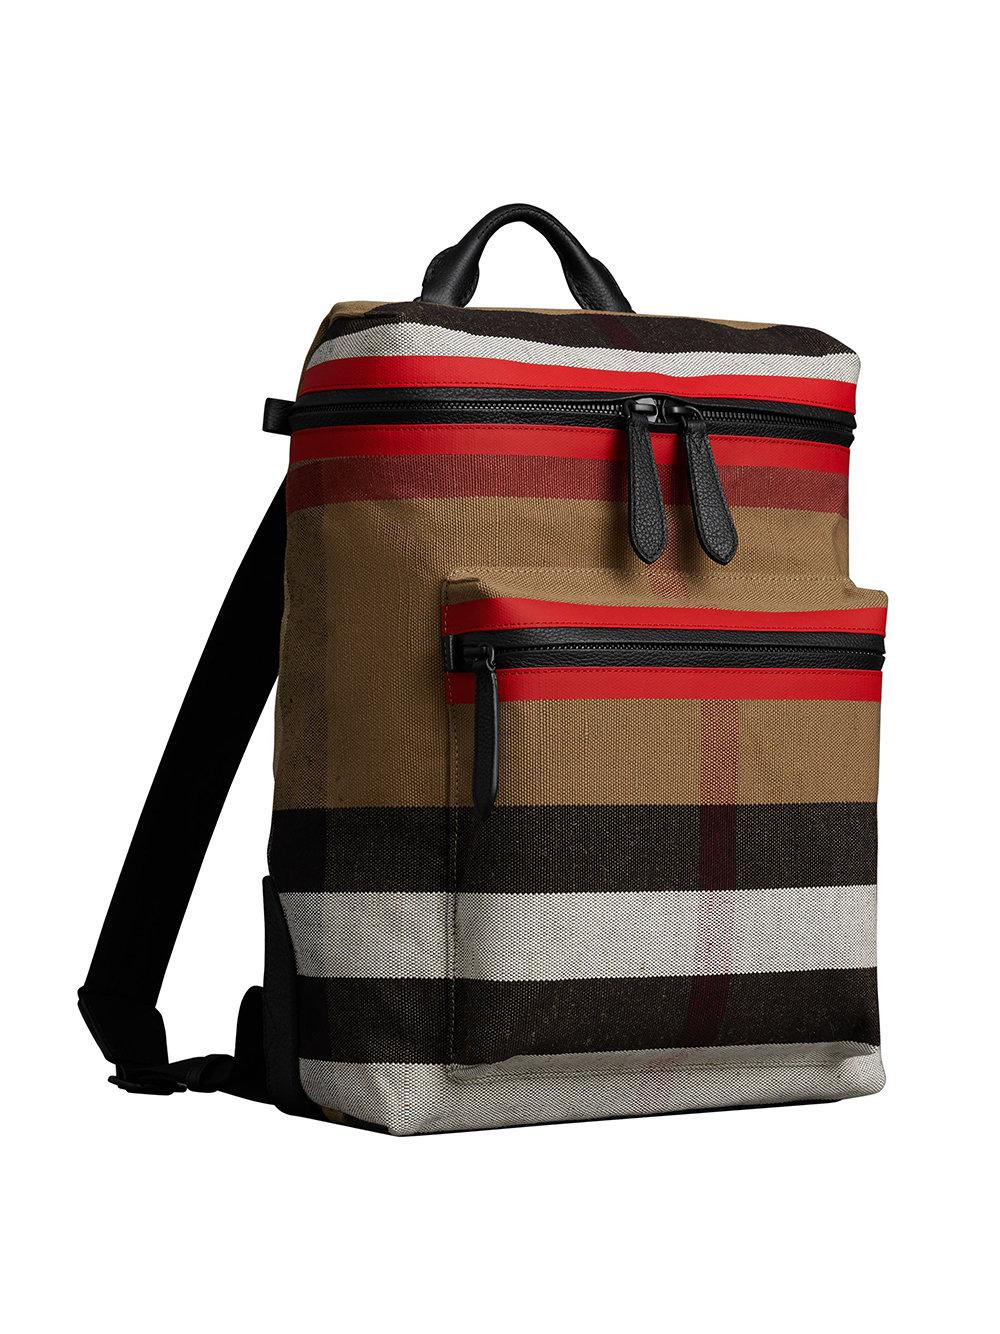 Lyst - Burberry Zip-top Leather Trim Canvas Check Backpack in Red 3478b19fb1c0c